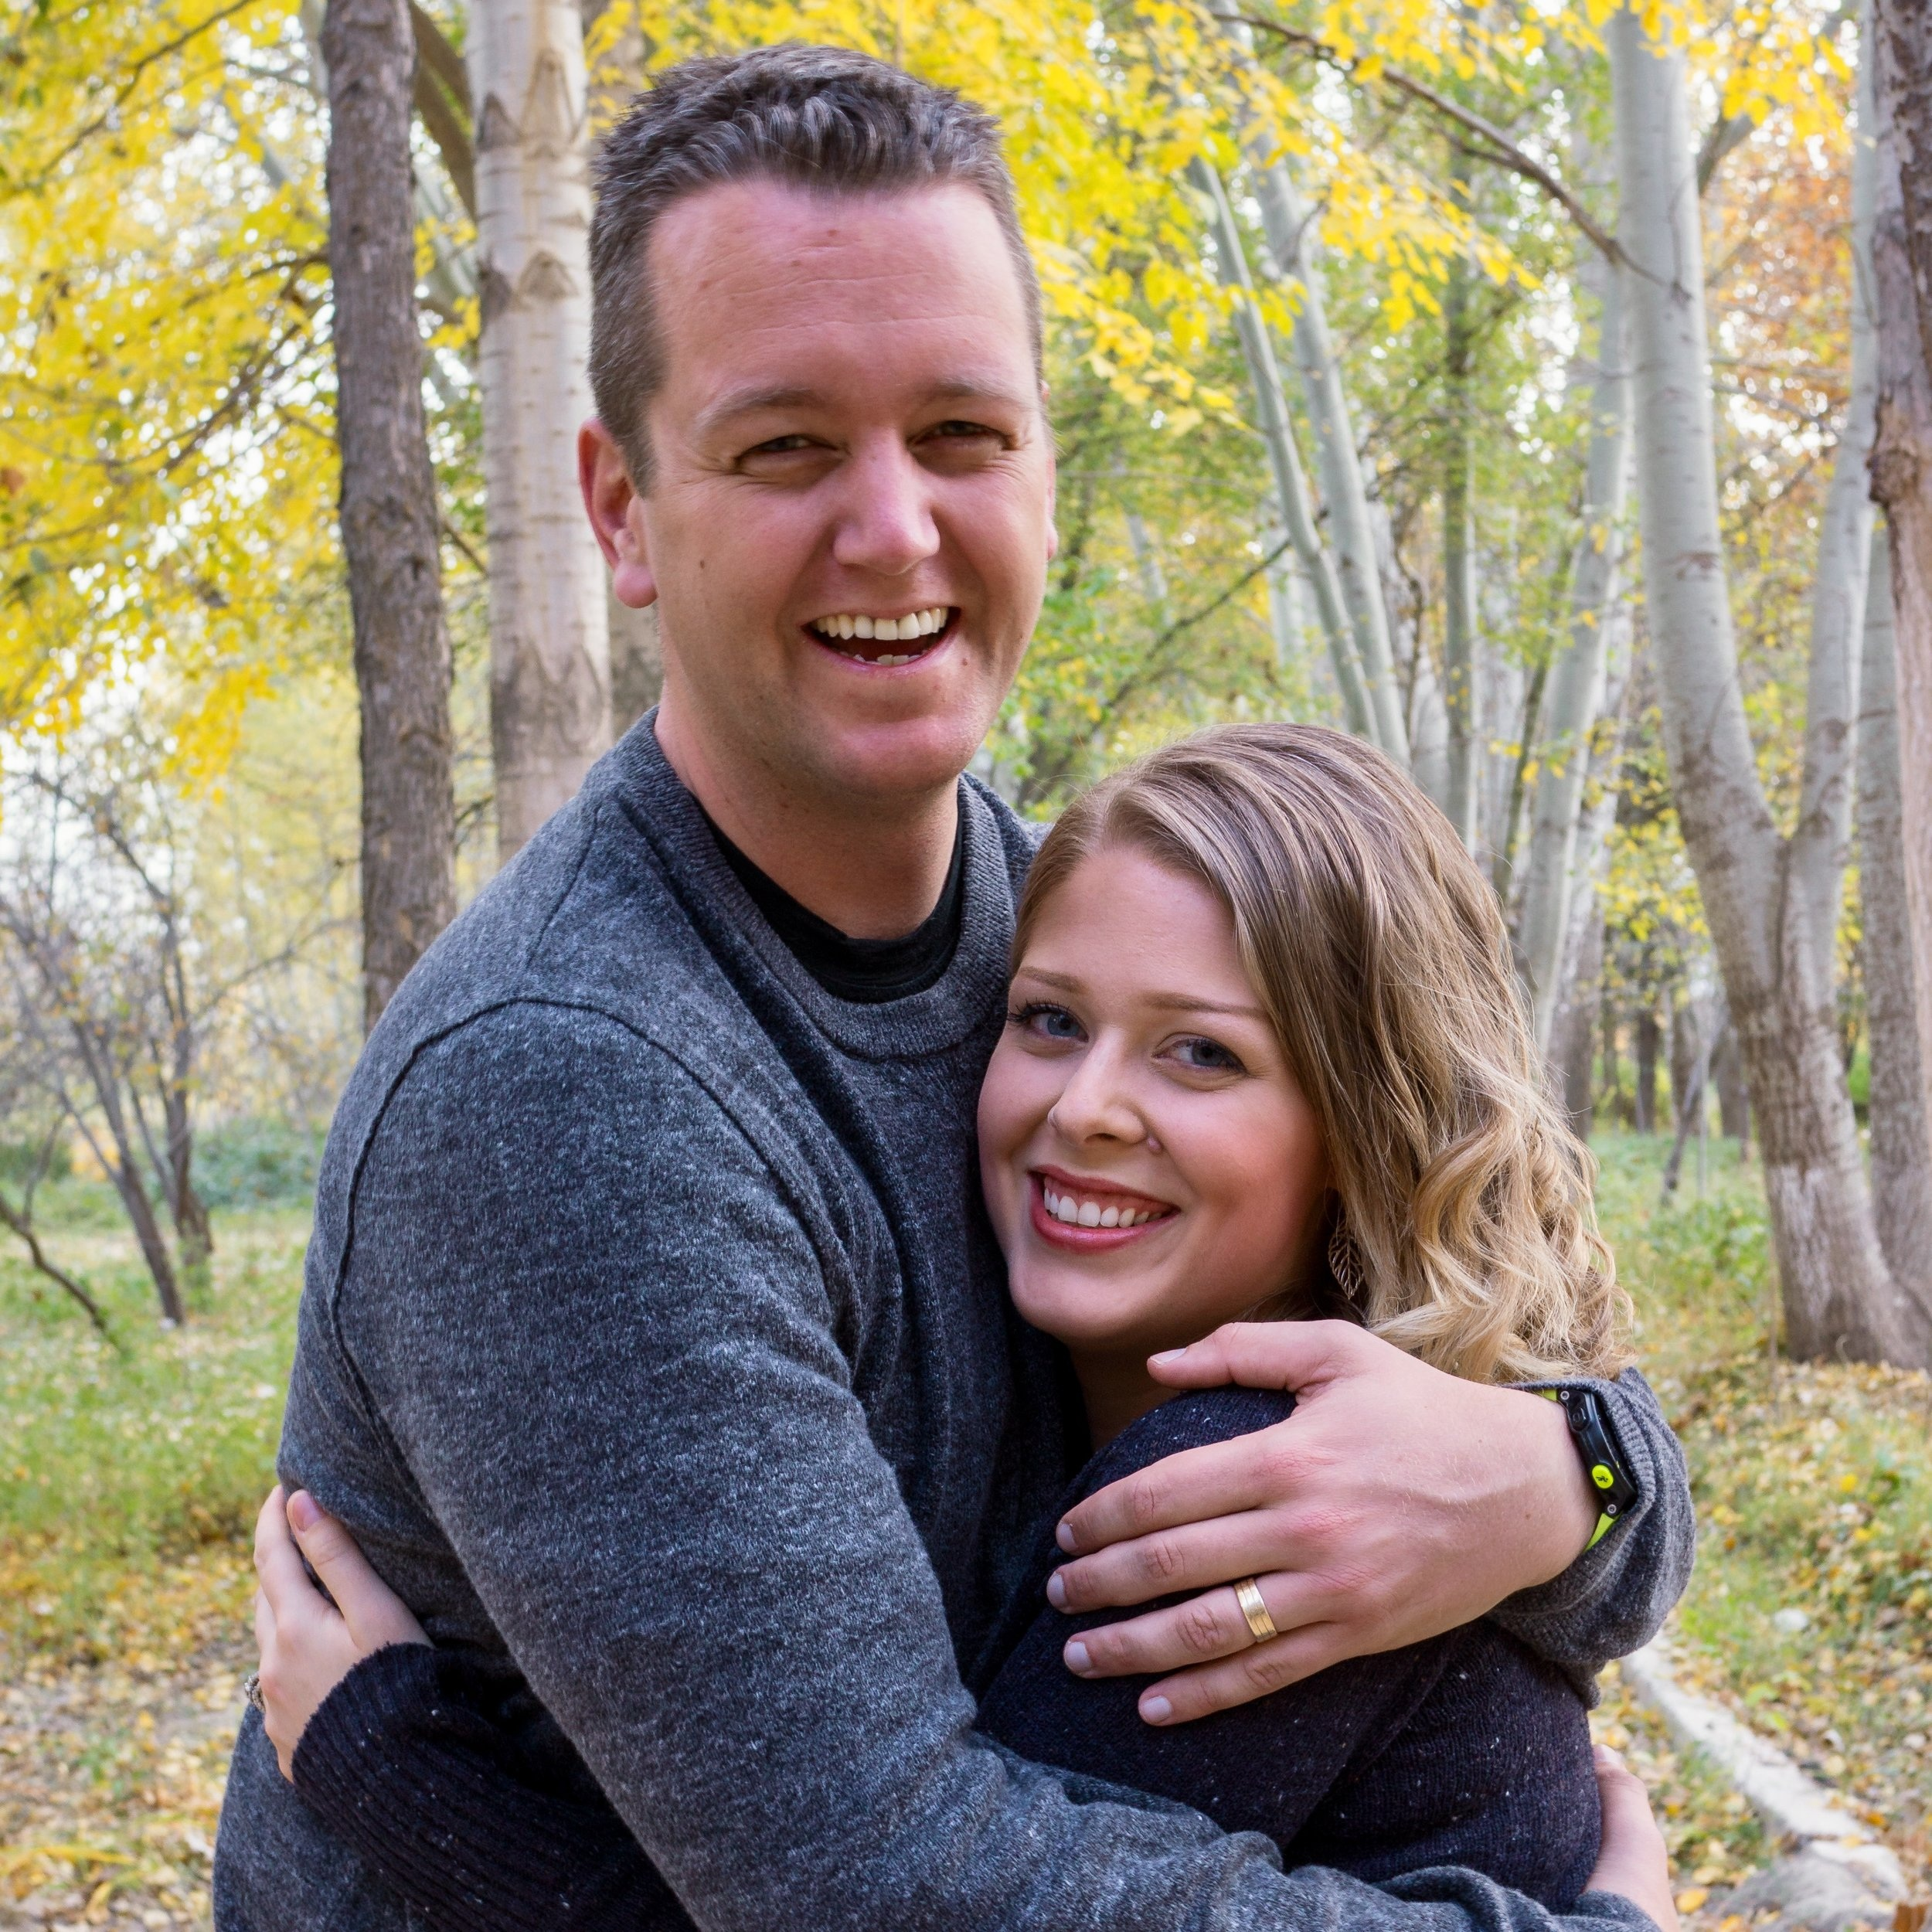 Jenn Brooks - Jenn is a homeschooling mom of four kids. She and her husband Evan have served for 5 years as missionaries in Central Asia. Having recently transitioned back to life in Canada, they now serve as the associate pastoral couple at Fleetwood International Church.